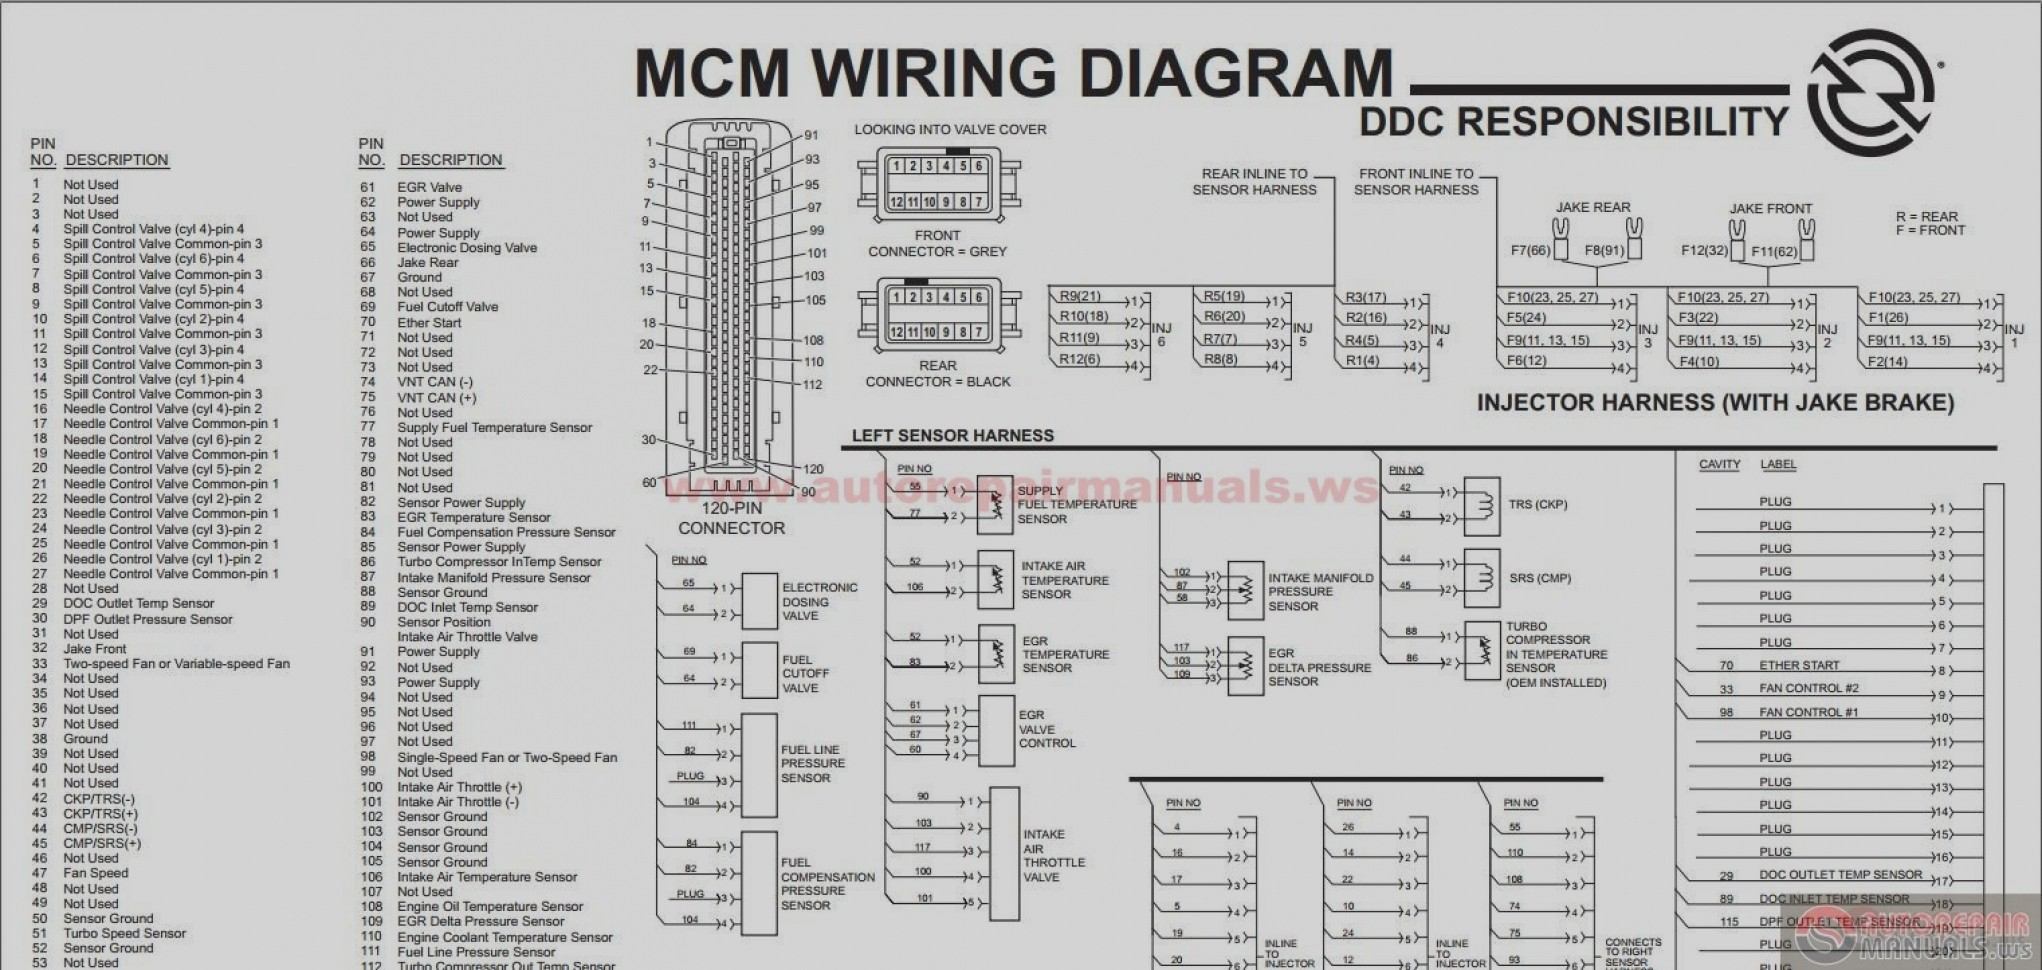 ddec 2 wiring diagram 2002 nissan sentra ecm 2007 detroit sel v best site harness